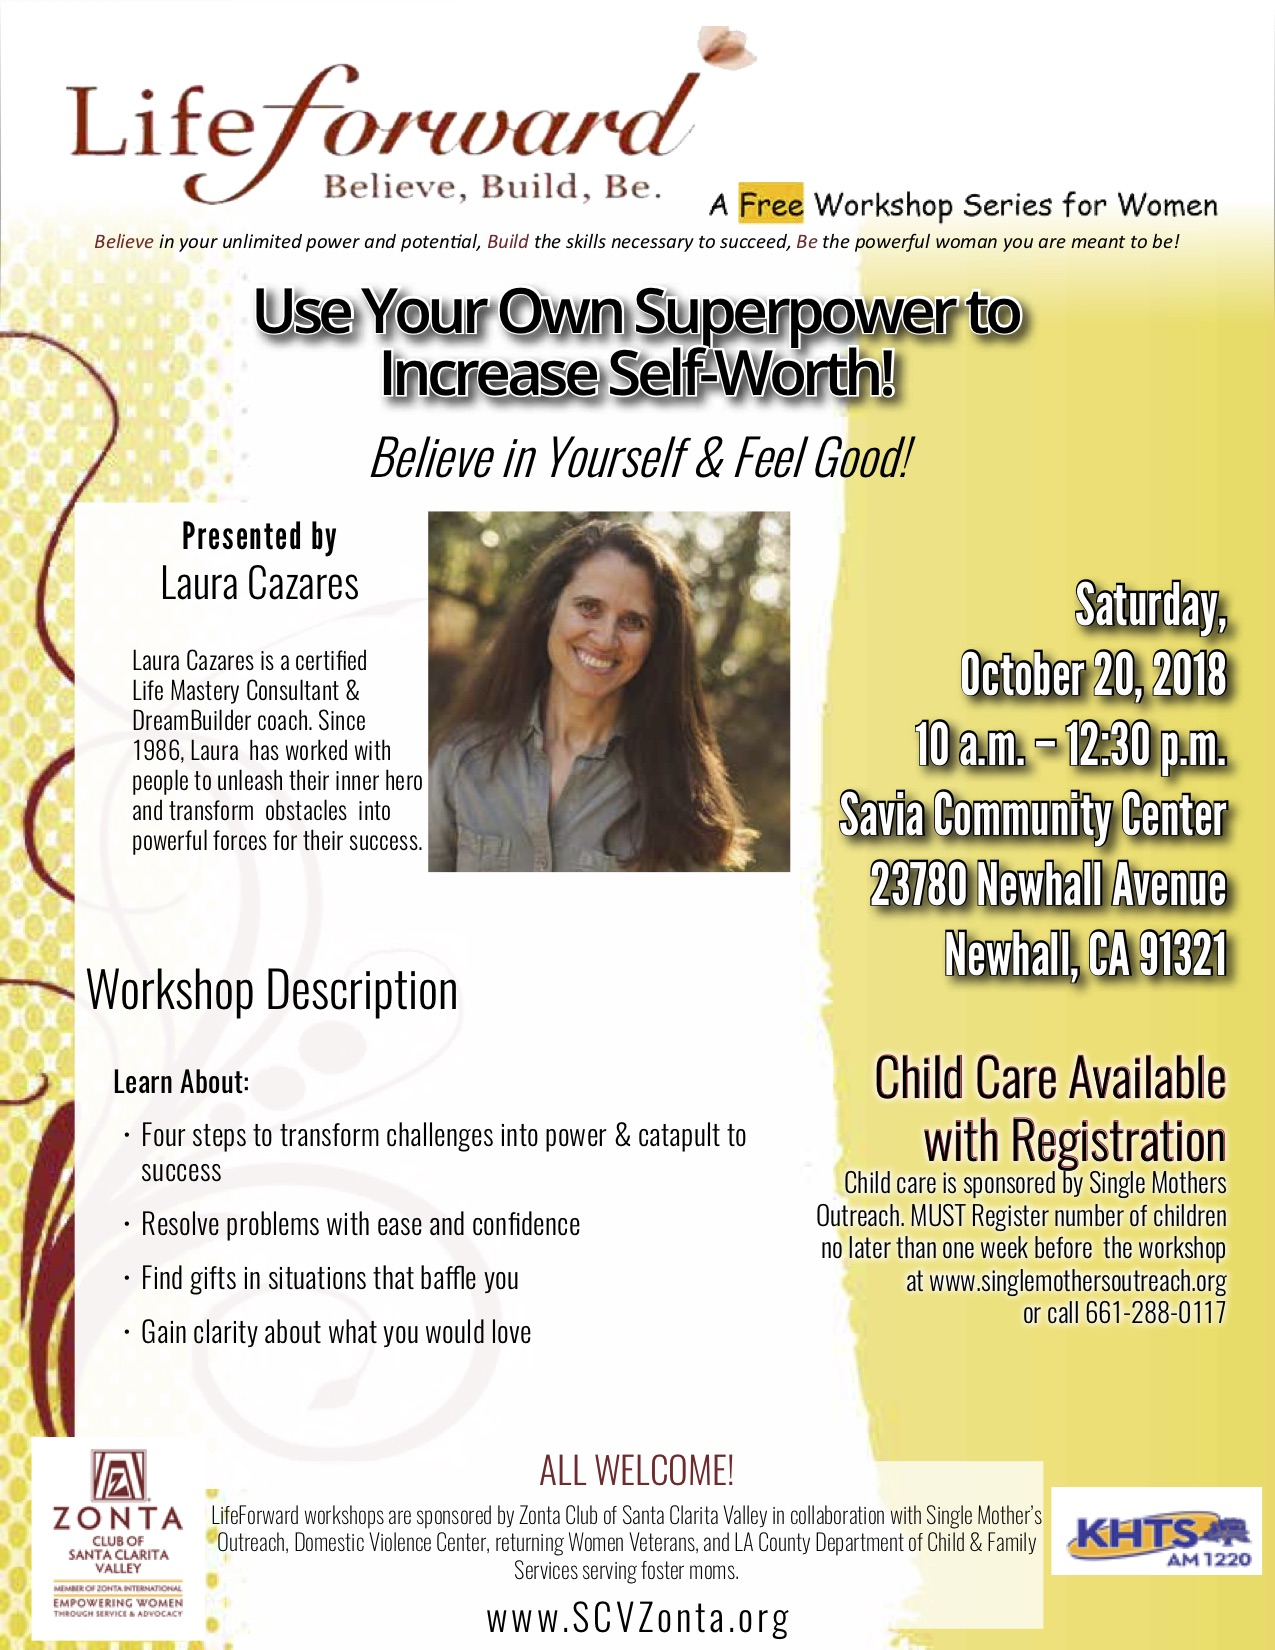 OCT 2018 Use Your Superpower to Increase Self-Worth